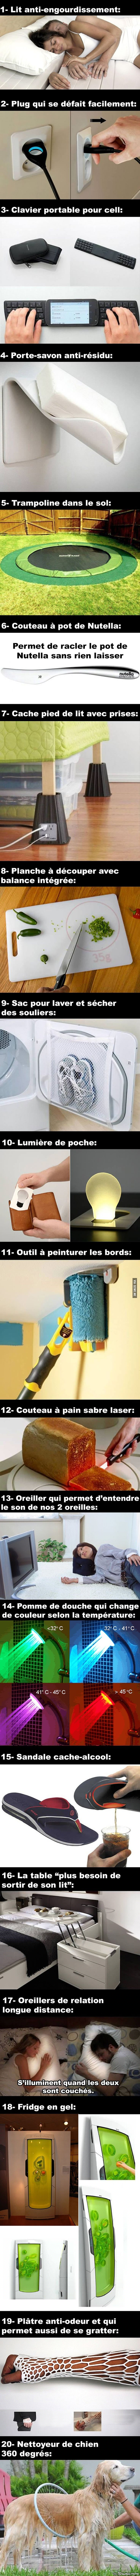 20 Inventions dont on a trop besoin – Québec Meme +